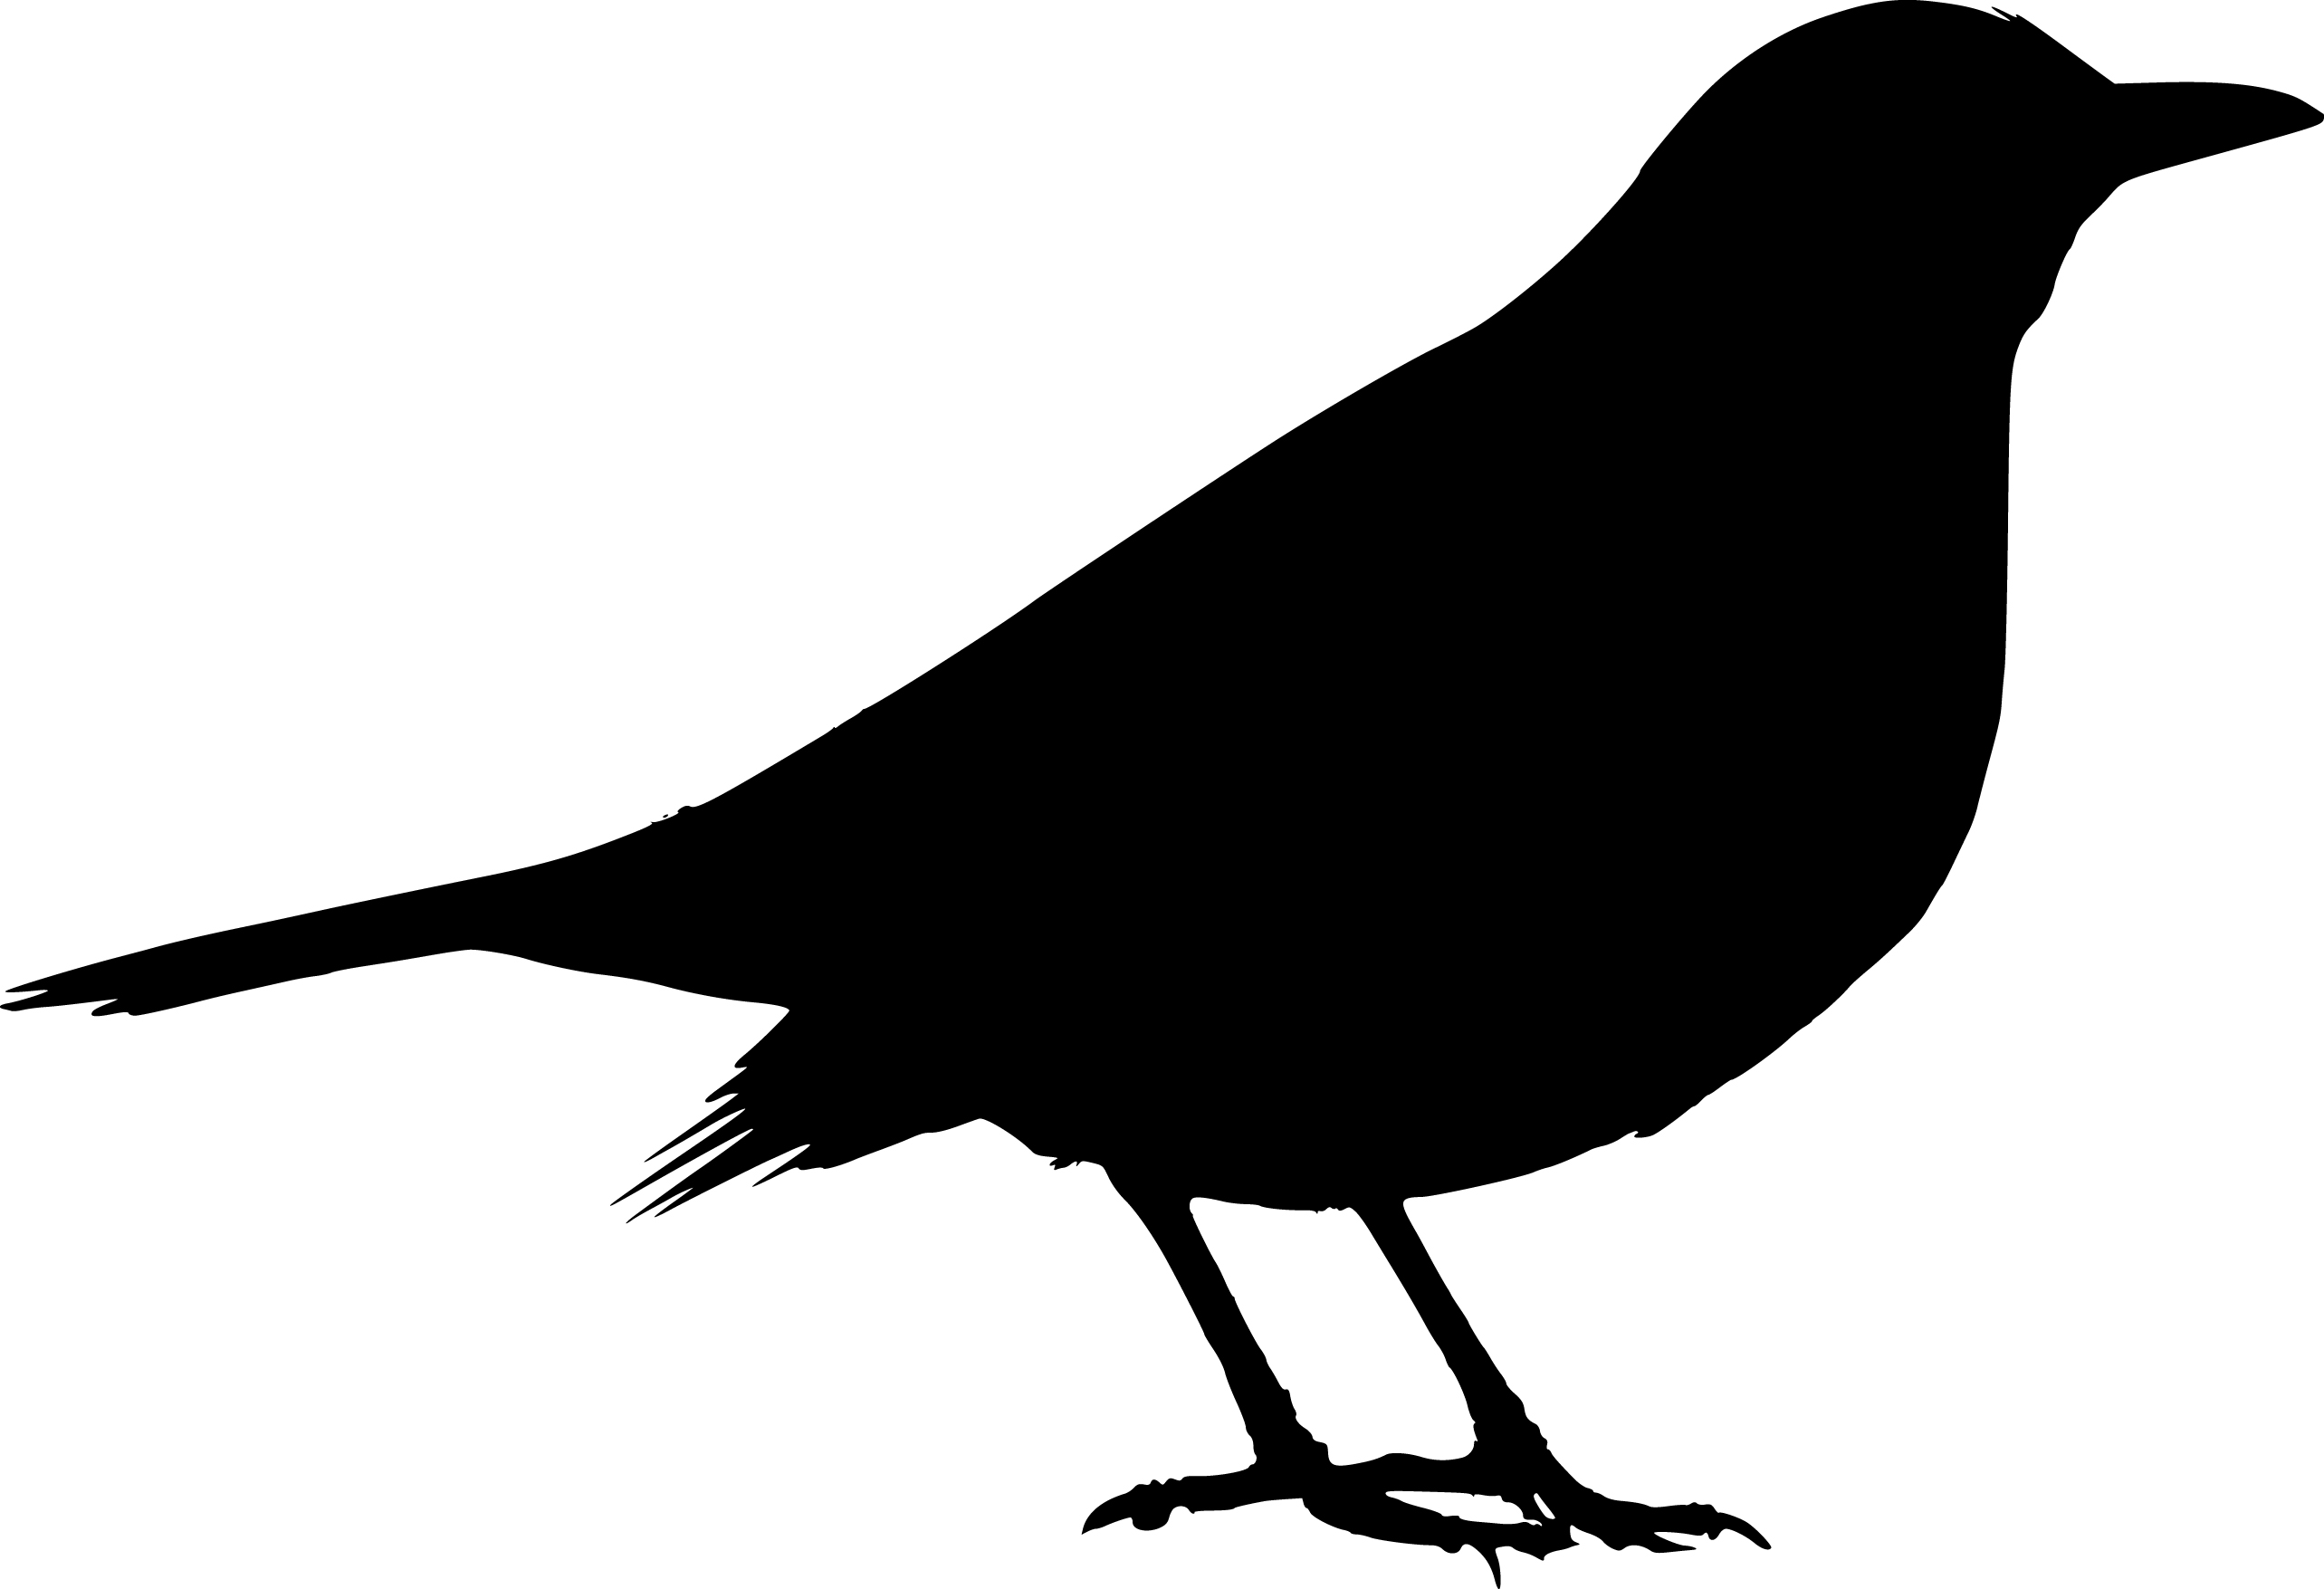 quail silhouette clip art - photo #20